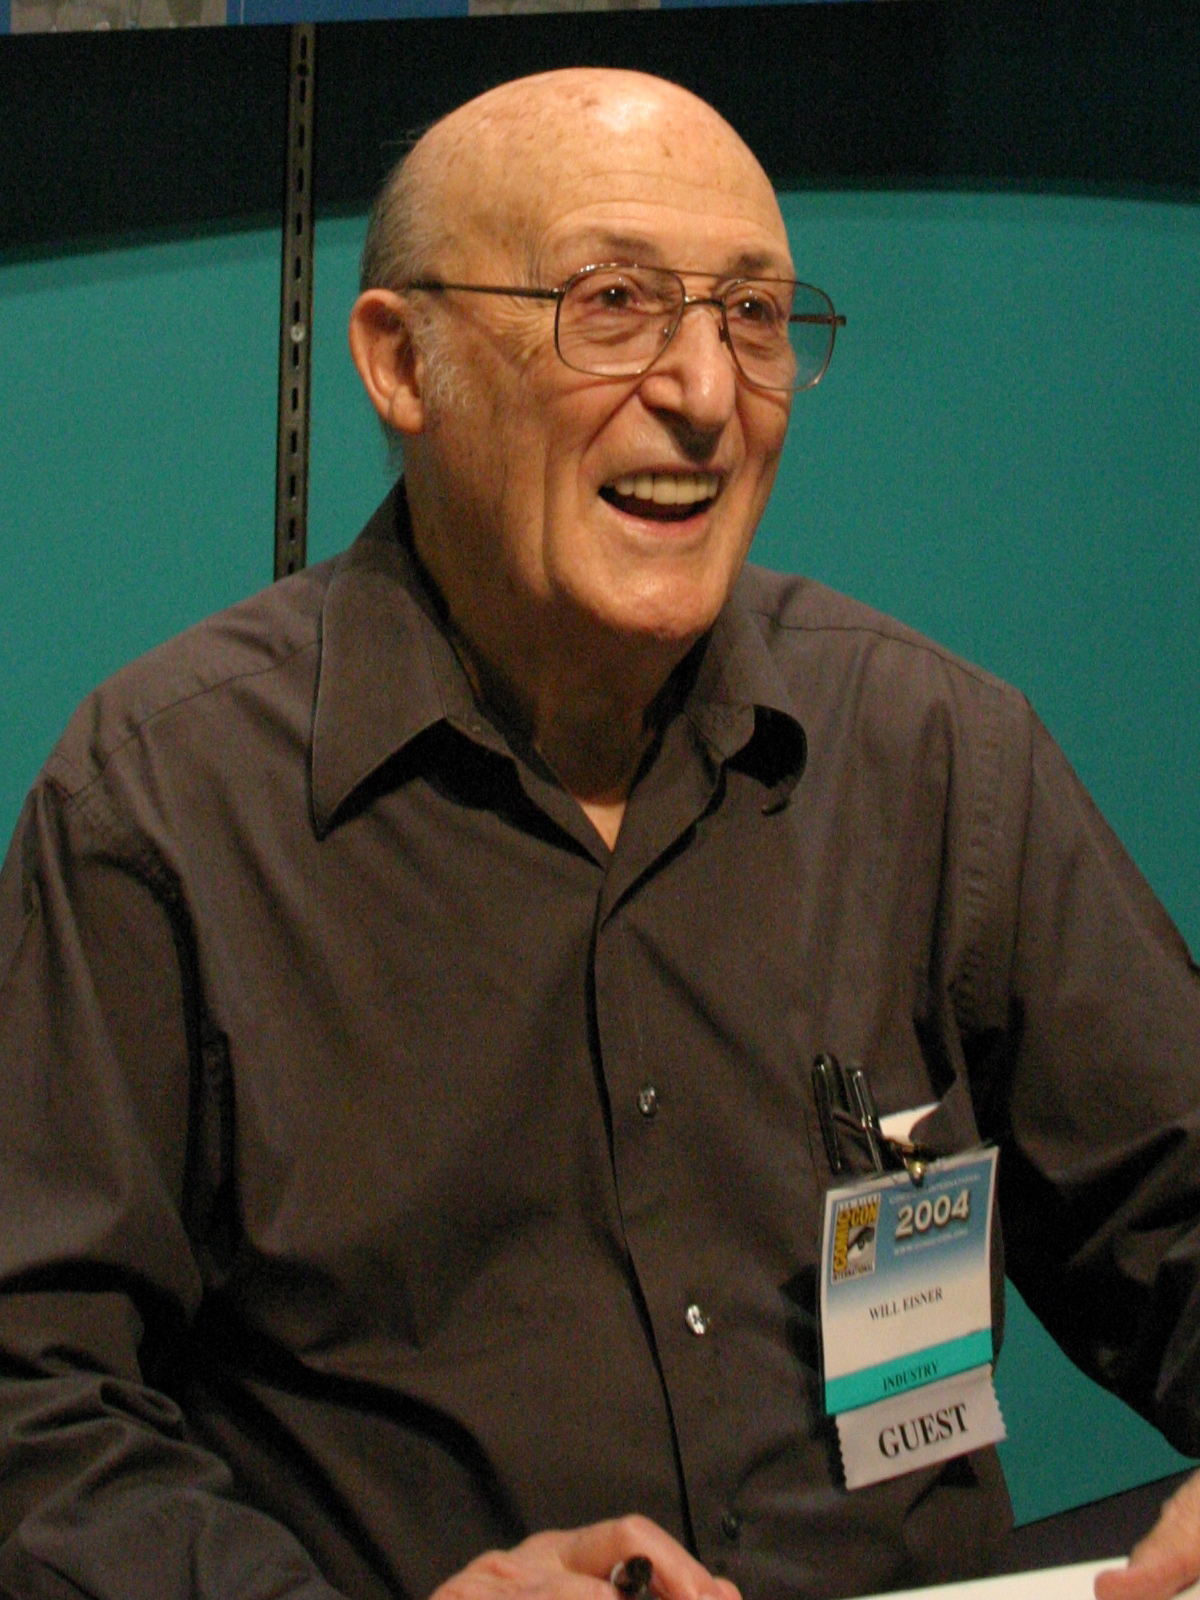 Will Eisner in 2004